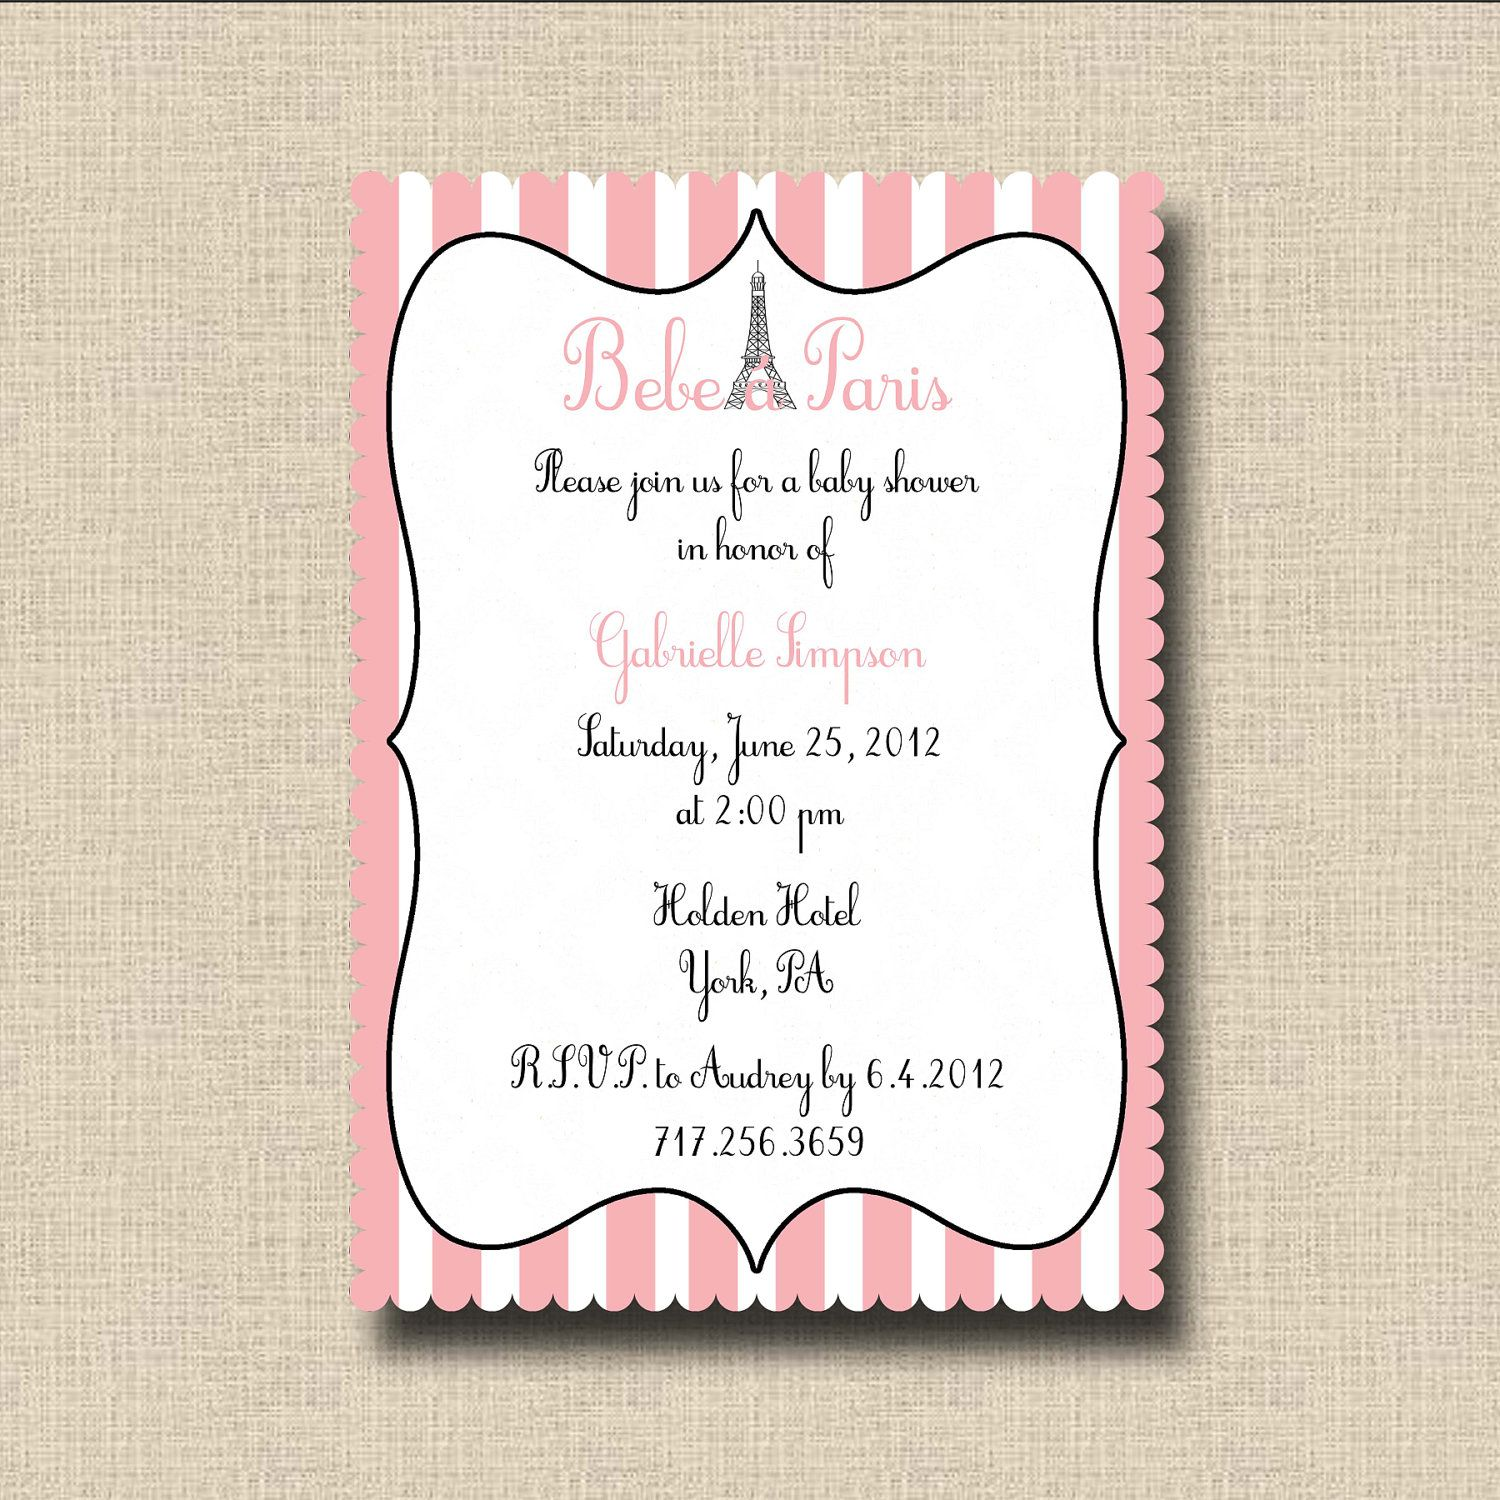 Bebe in Paris Baby Shower Invitation or French Pink Poodle in Paris ...